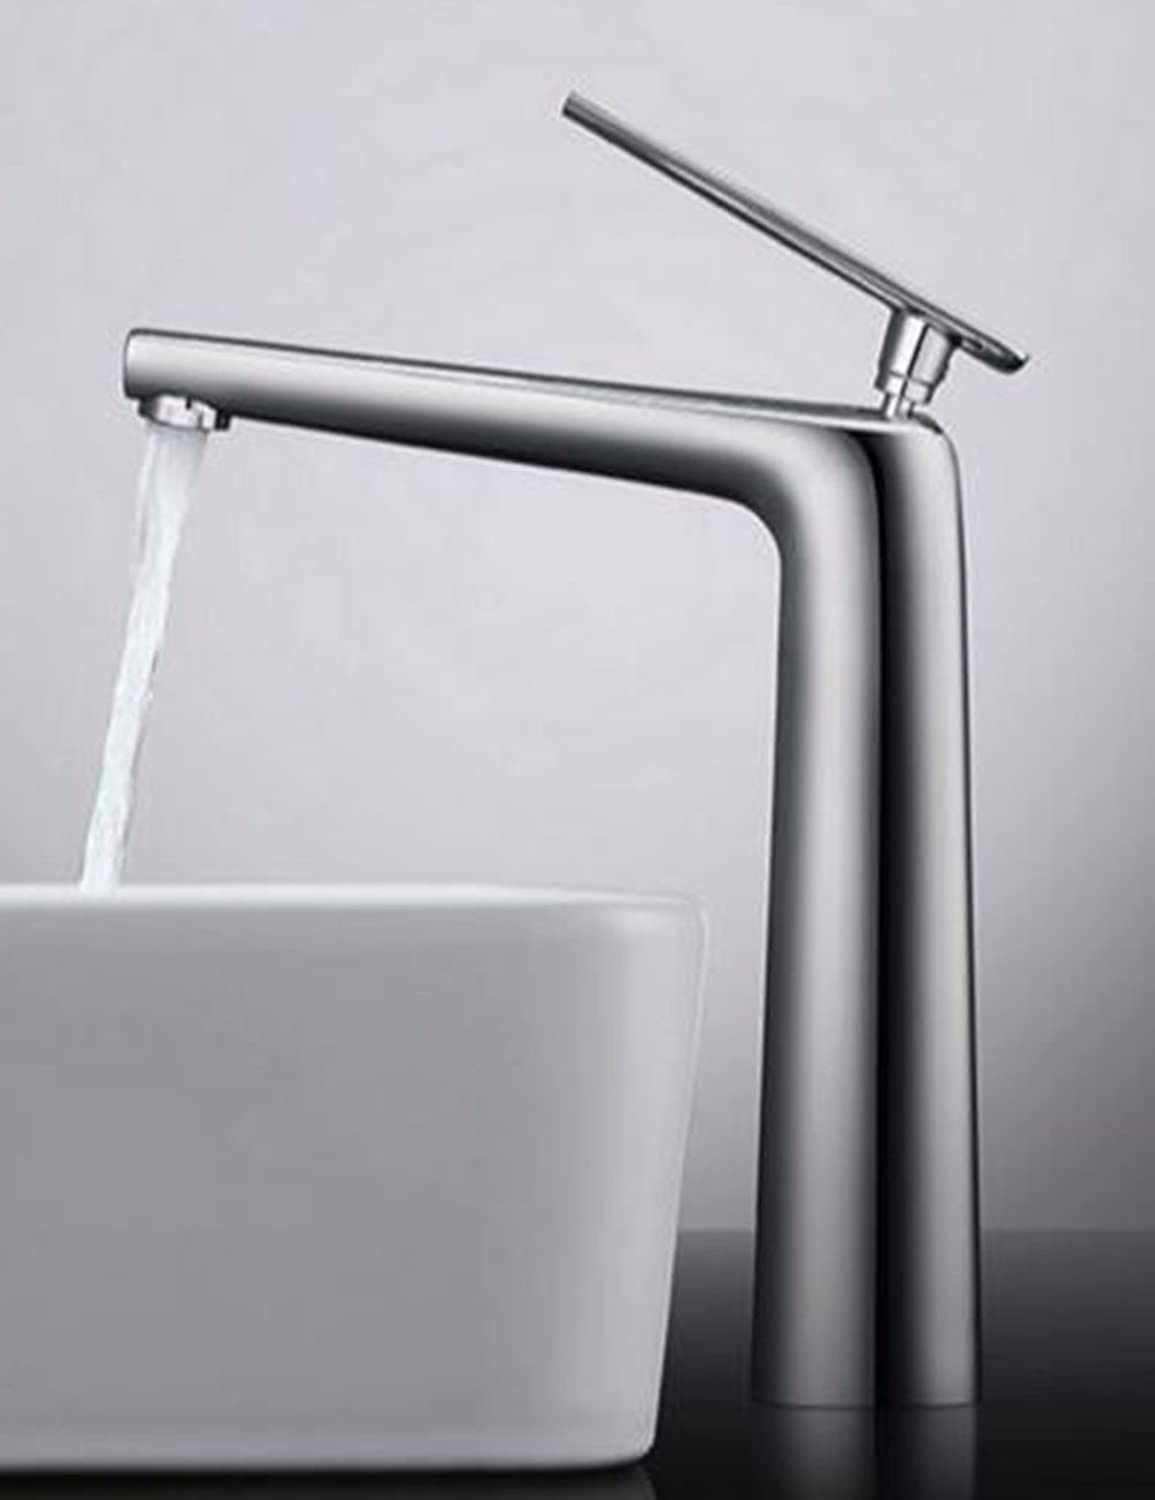 Qmpzg-Hot And Cold Basin Faucet?Cu All Basin Mixer?Bench Basin Single Hole Bath Faucet?B